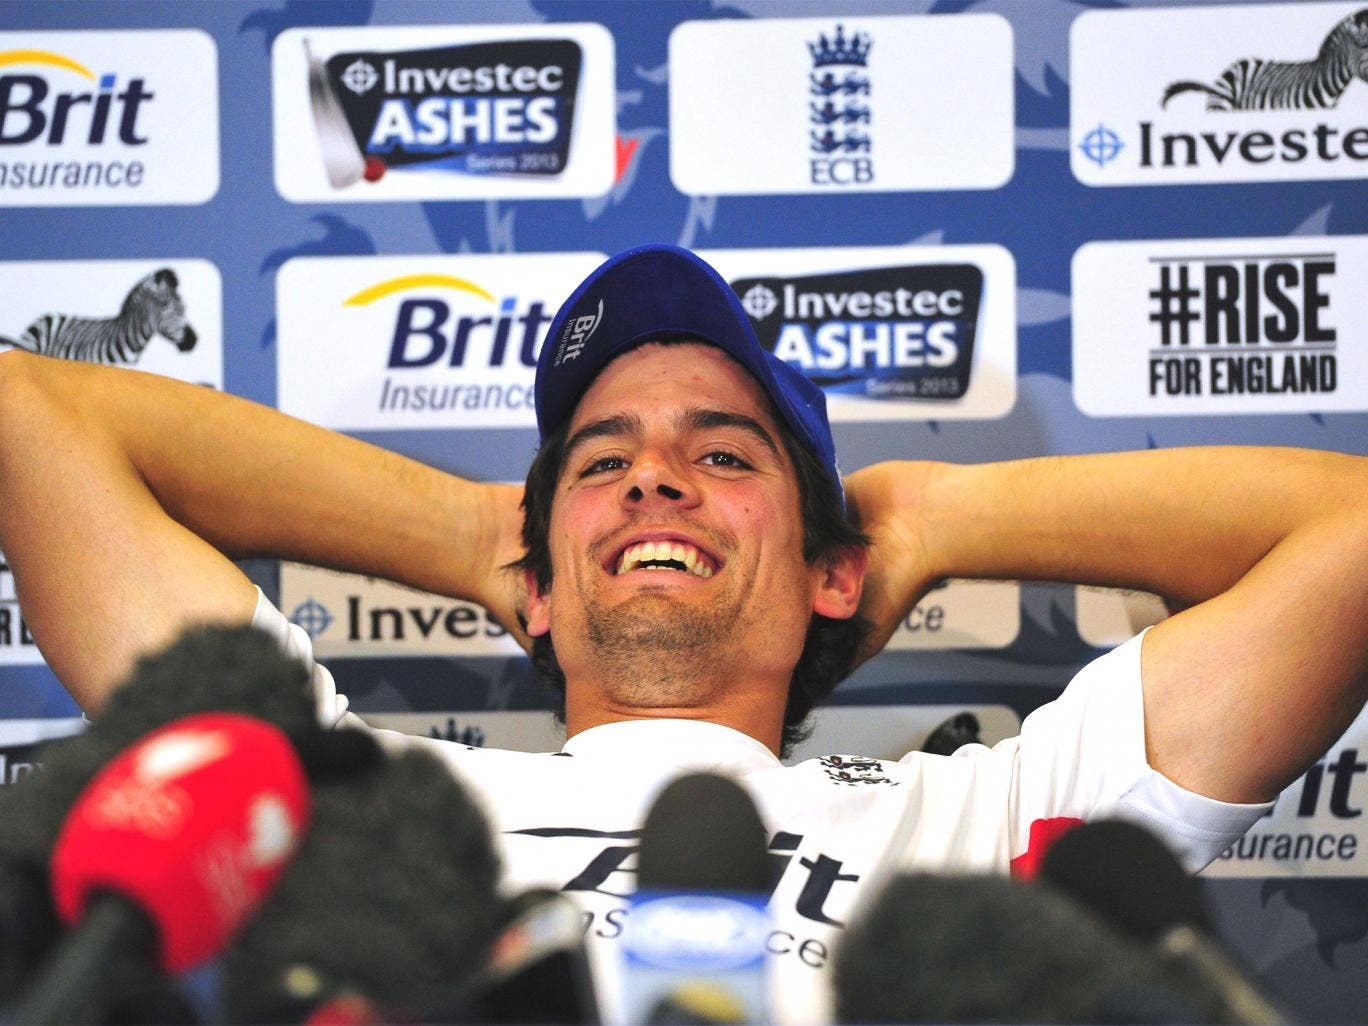 Alastair Cook was in a laid-back mood in Wednesday's press conference at Lord's